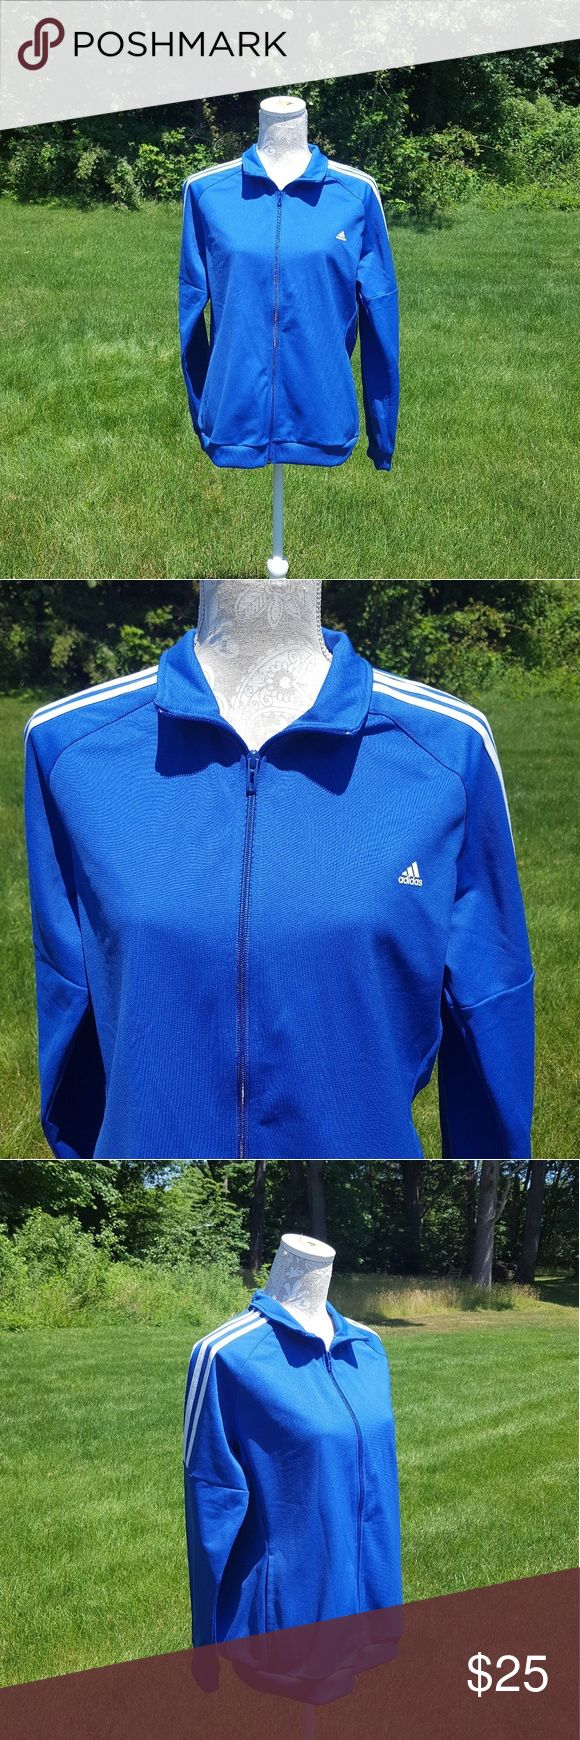 Adidas blue and white zip up track jacket Has been worn Size large Long sleeves Zip up Collared  Track jacket  No Trades adidas Jackets & Coats